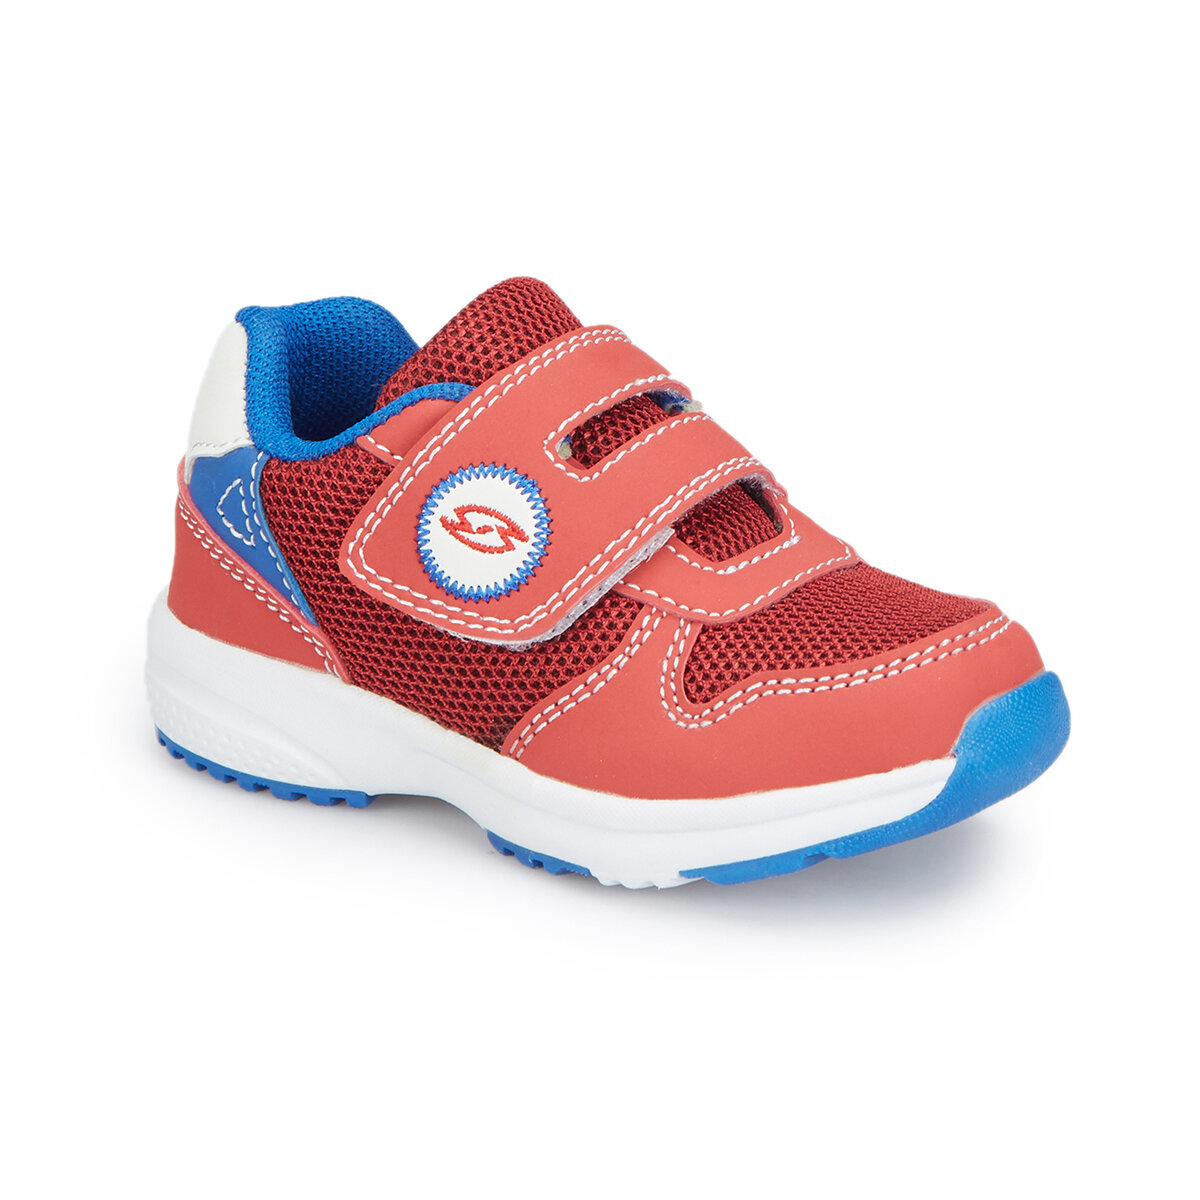 FLO 81.509566.B Red Male Child Sports Shoes Polaris